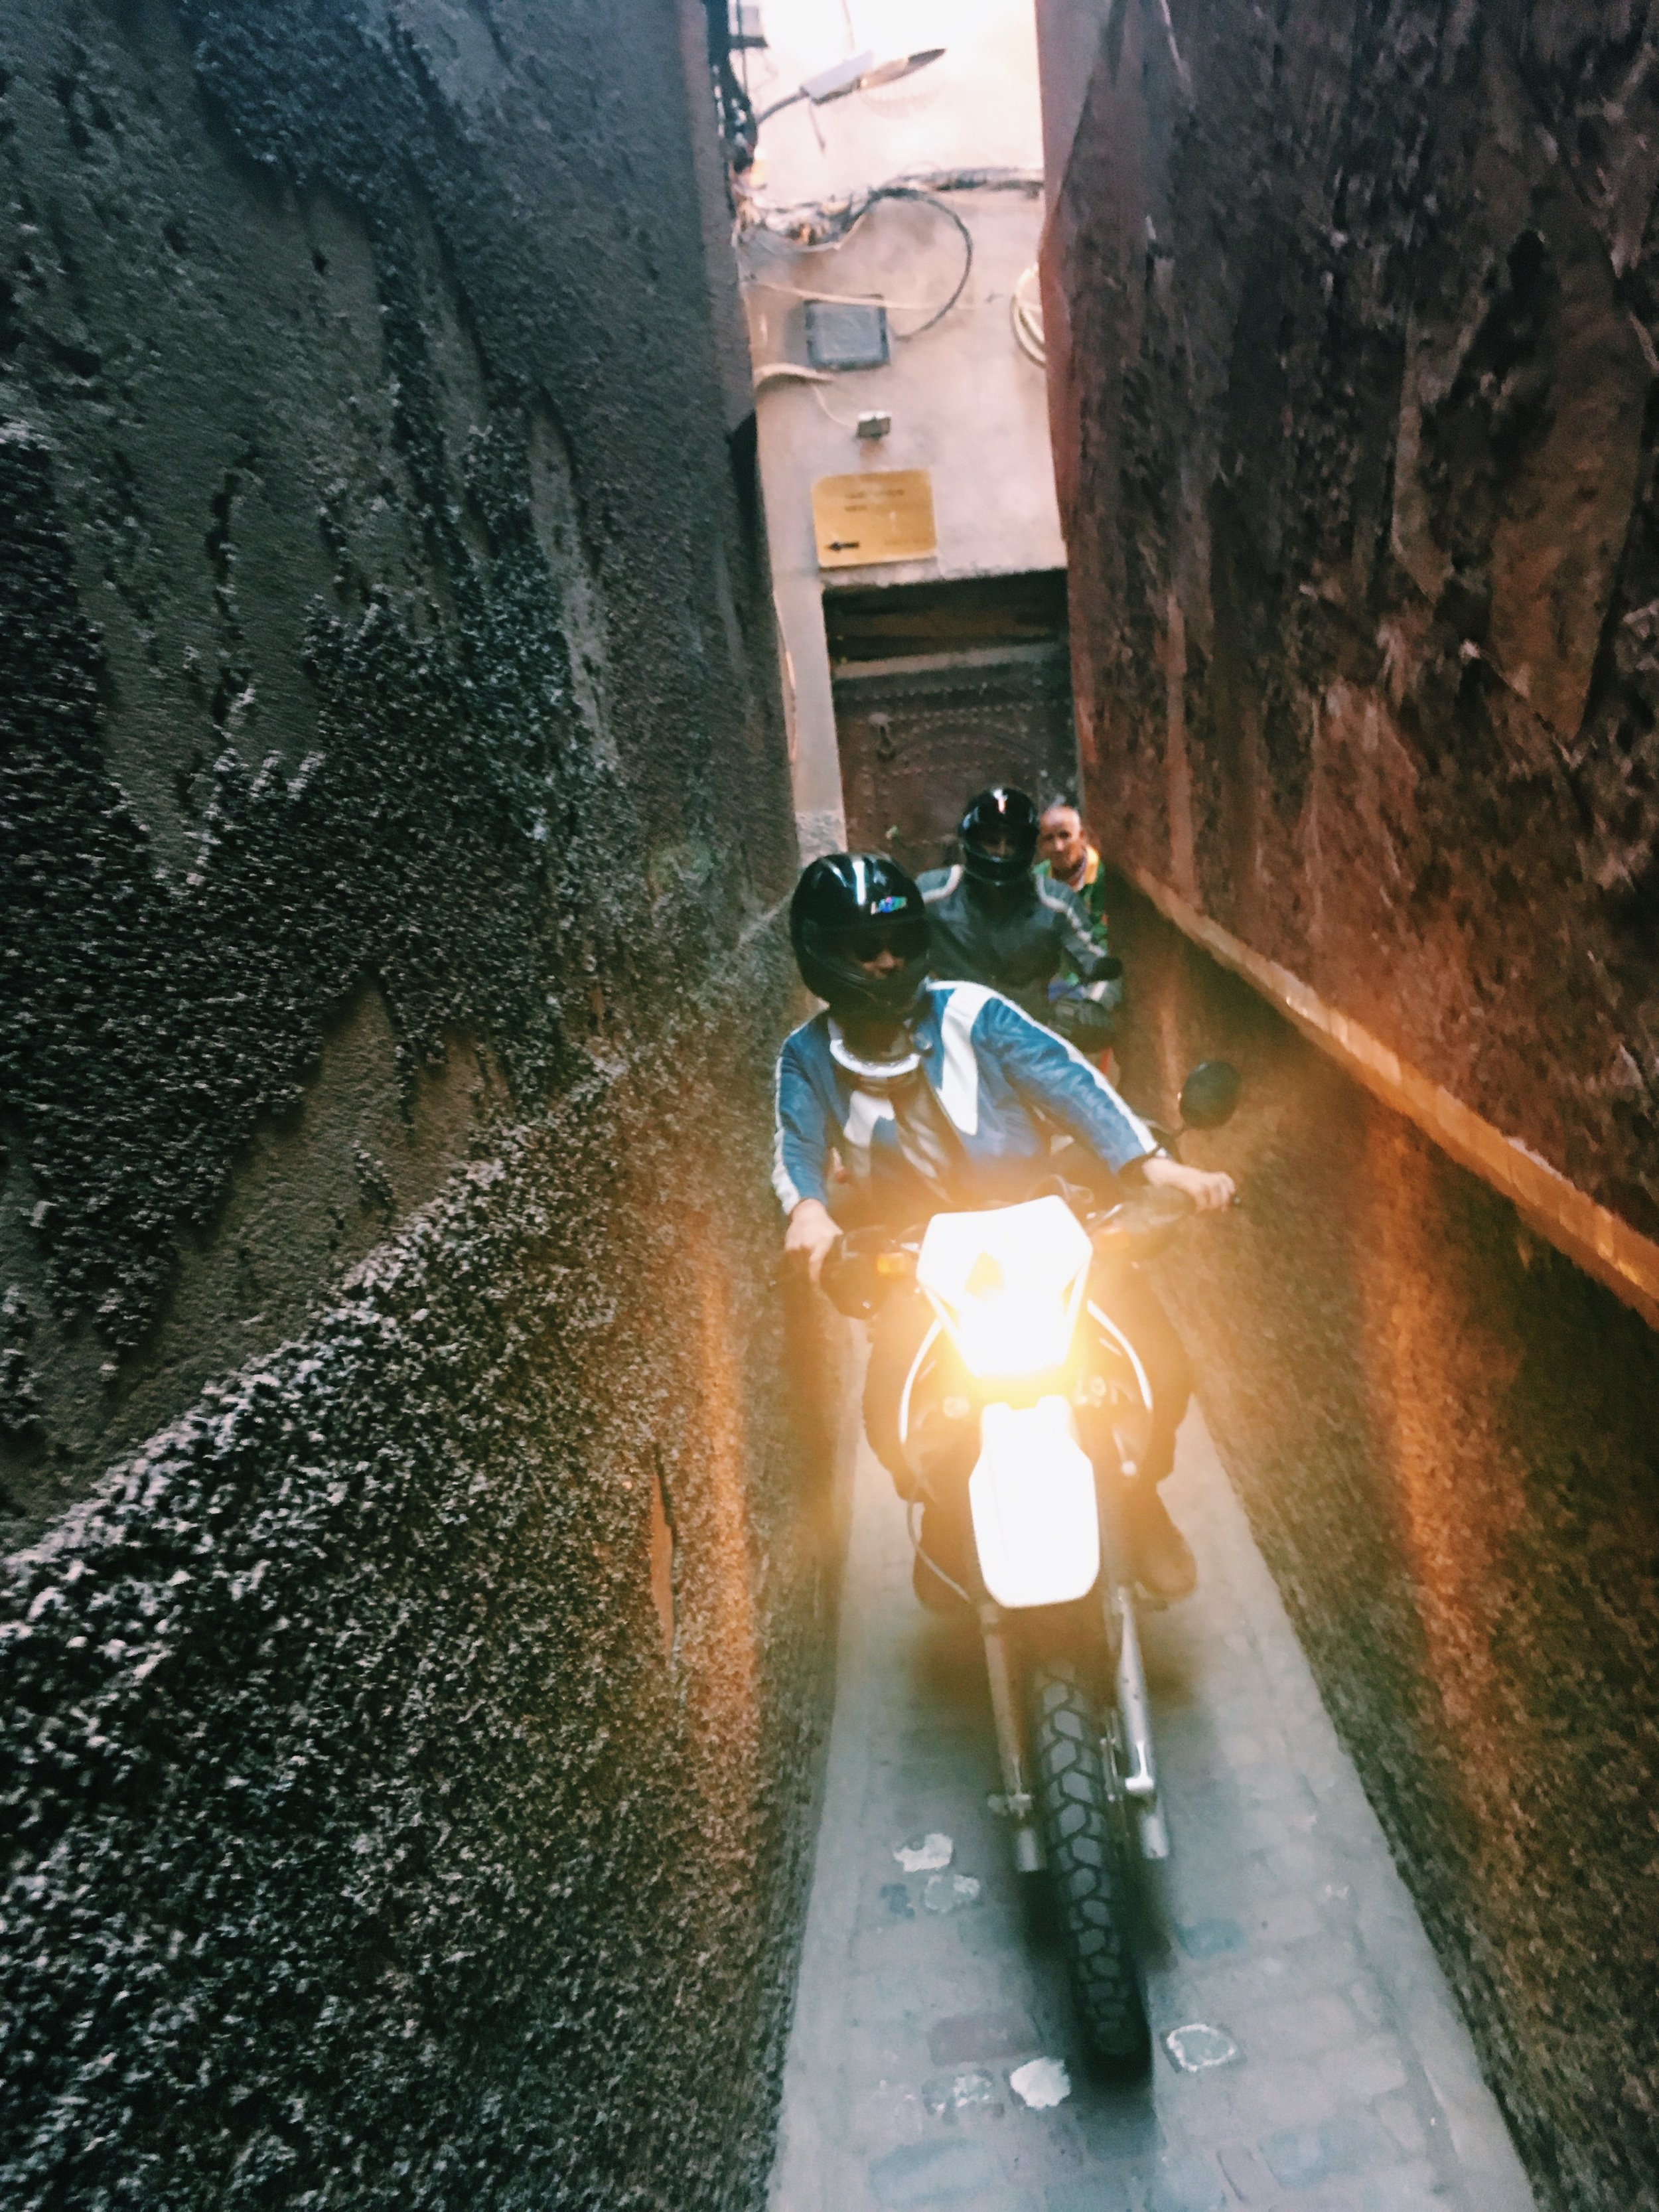 Trying to find our hostel in Marrakesh led us down some pretty narrow backstreets.